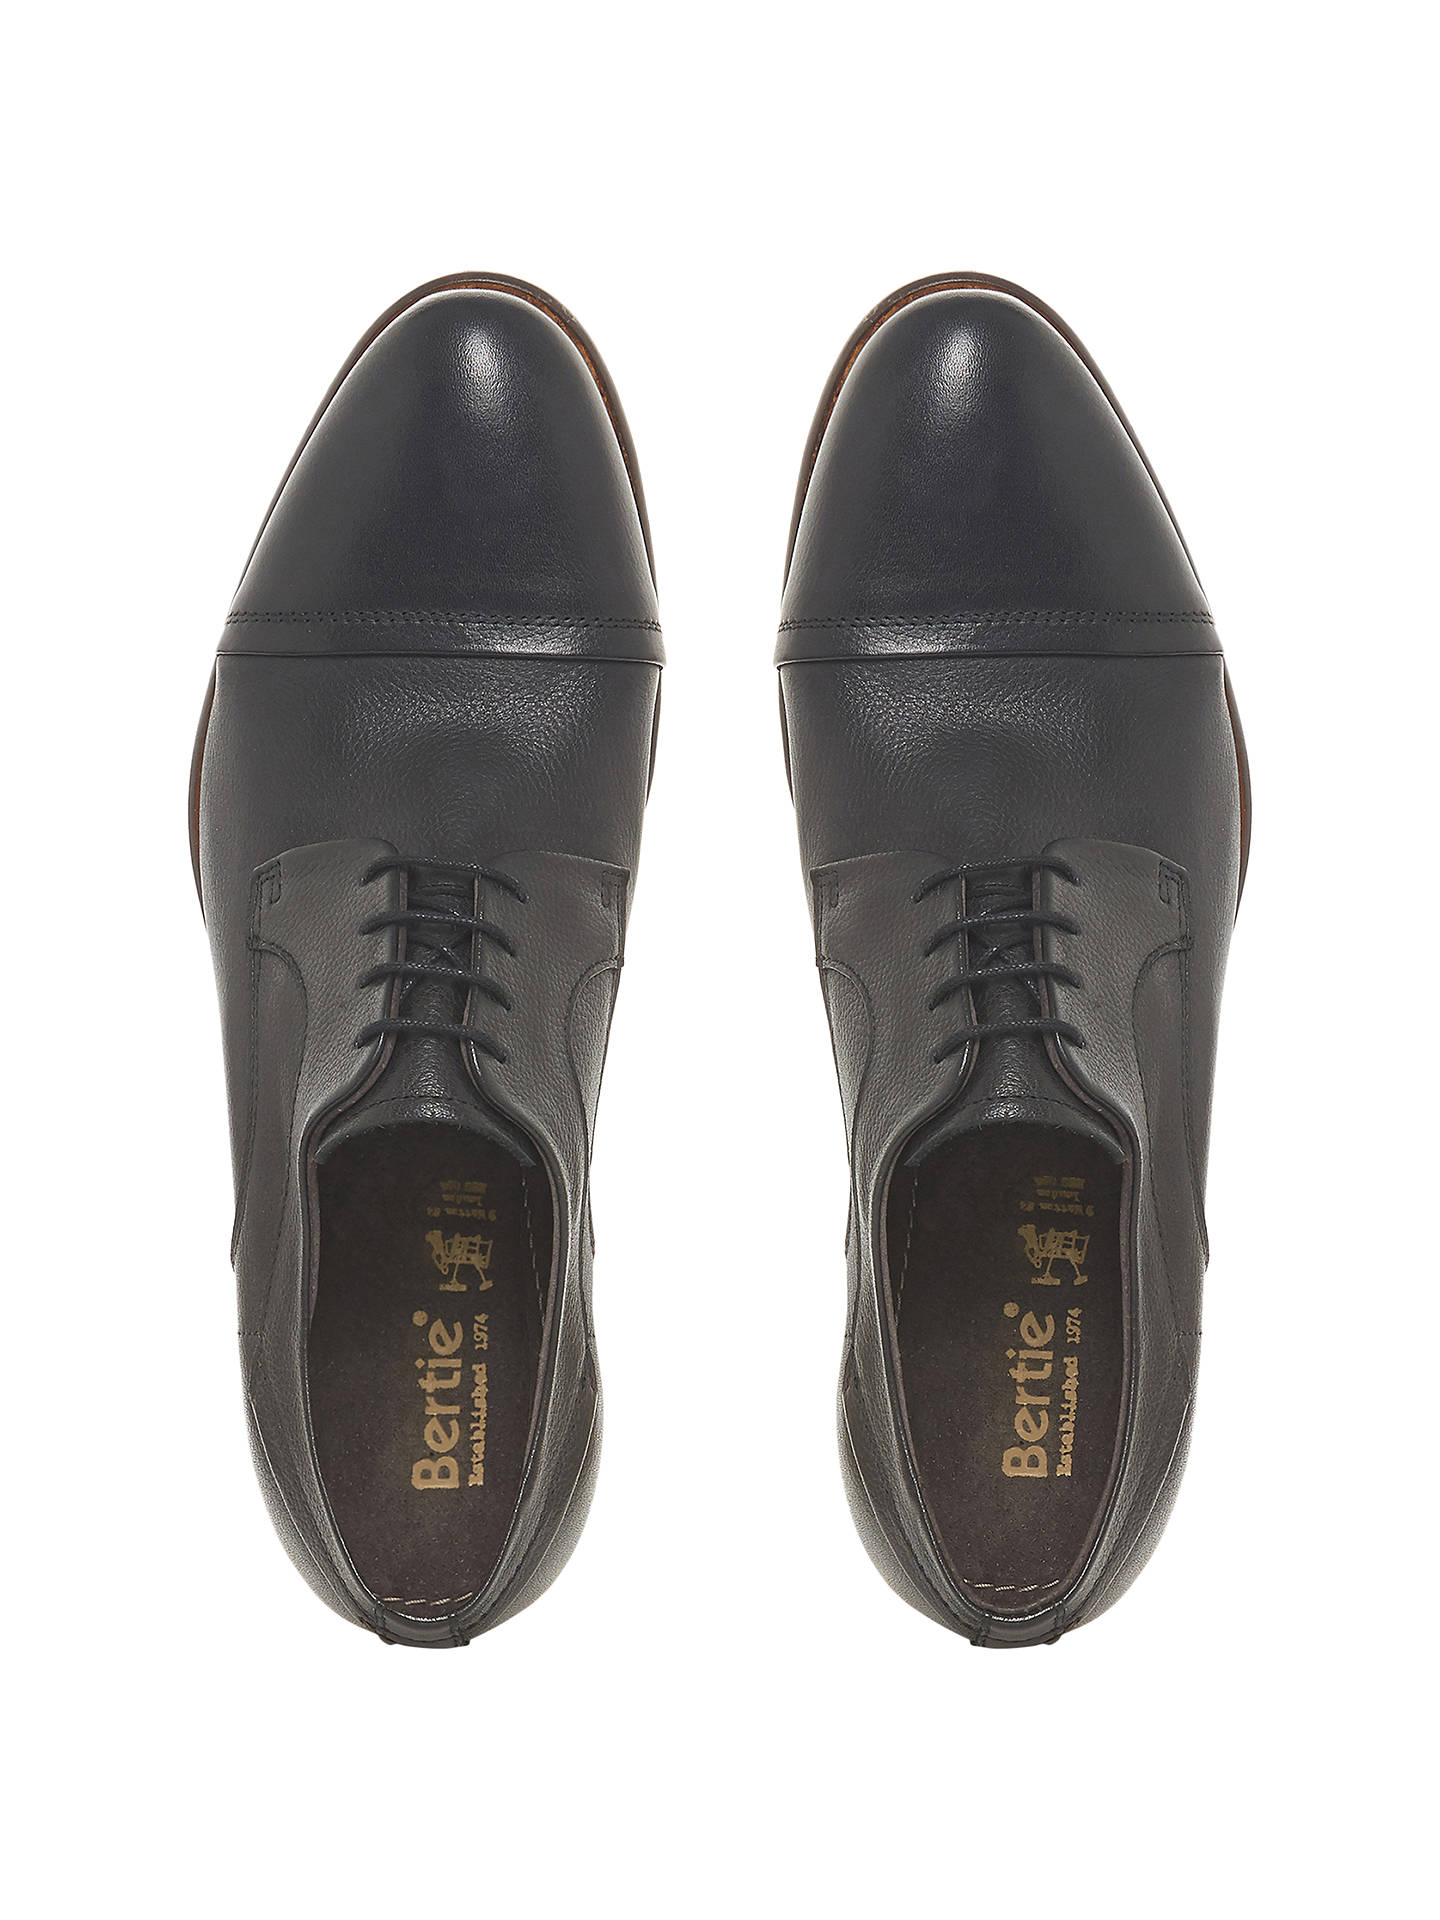 BuyBertie Parallel Stitched Toe Cap Gibson Shoes, Black, 7 Online at johnlewis.com